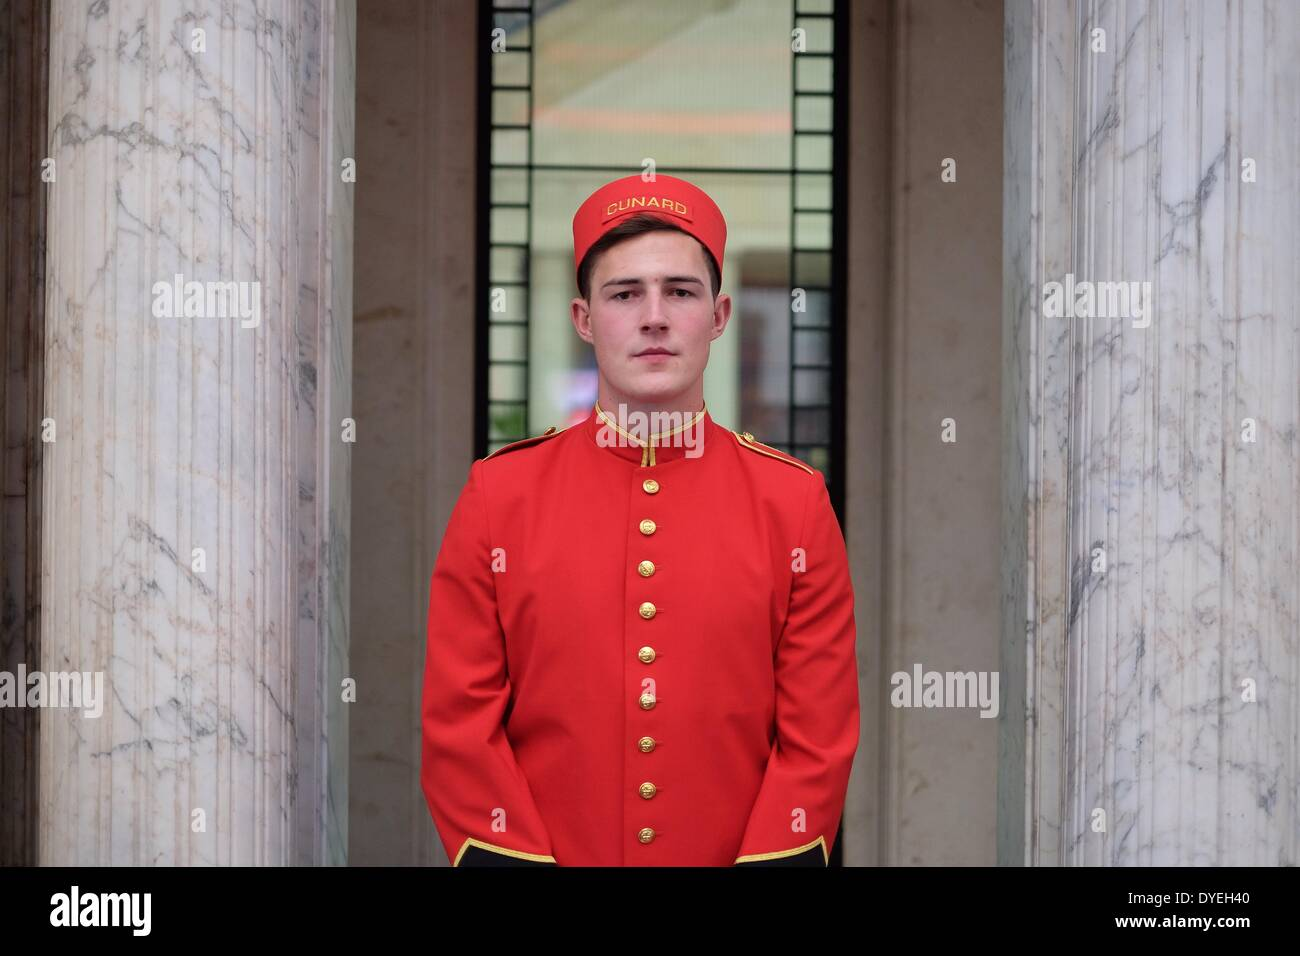 Cunard Building, Liverpool. 16th April, 2014. A Cunard bellboy welcomes guests to the launch of the '3 Queens. 1 magnificent city' event in Liverpool. 3 Cunard ships will visit the city in 2015. Credit:  Peter Carr/Alamy Live News - Stock Image